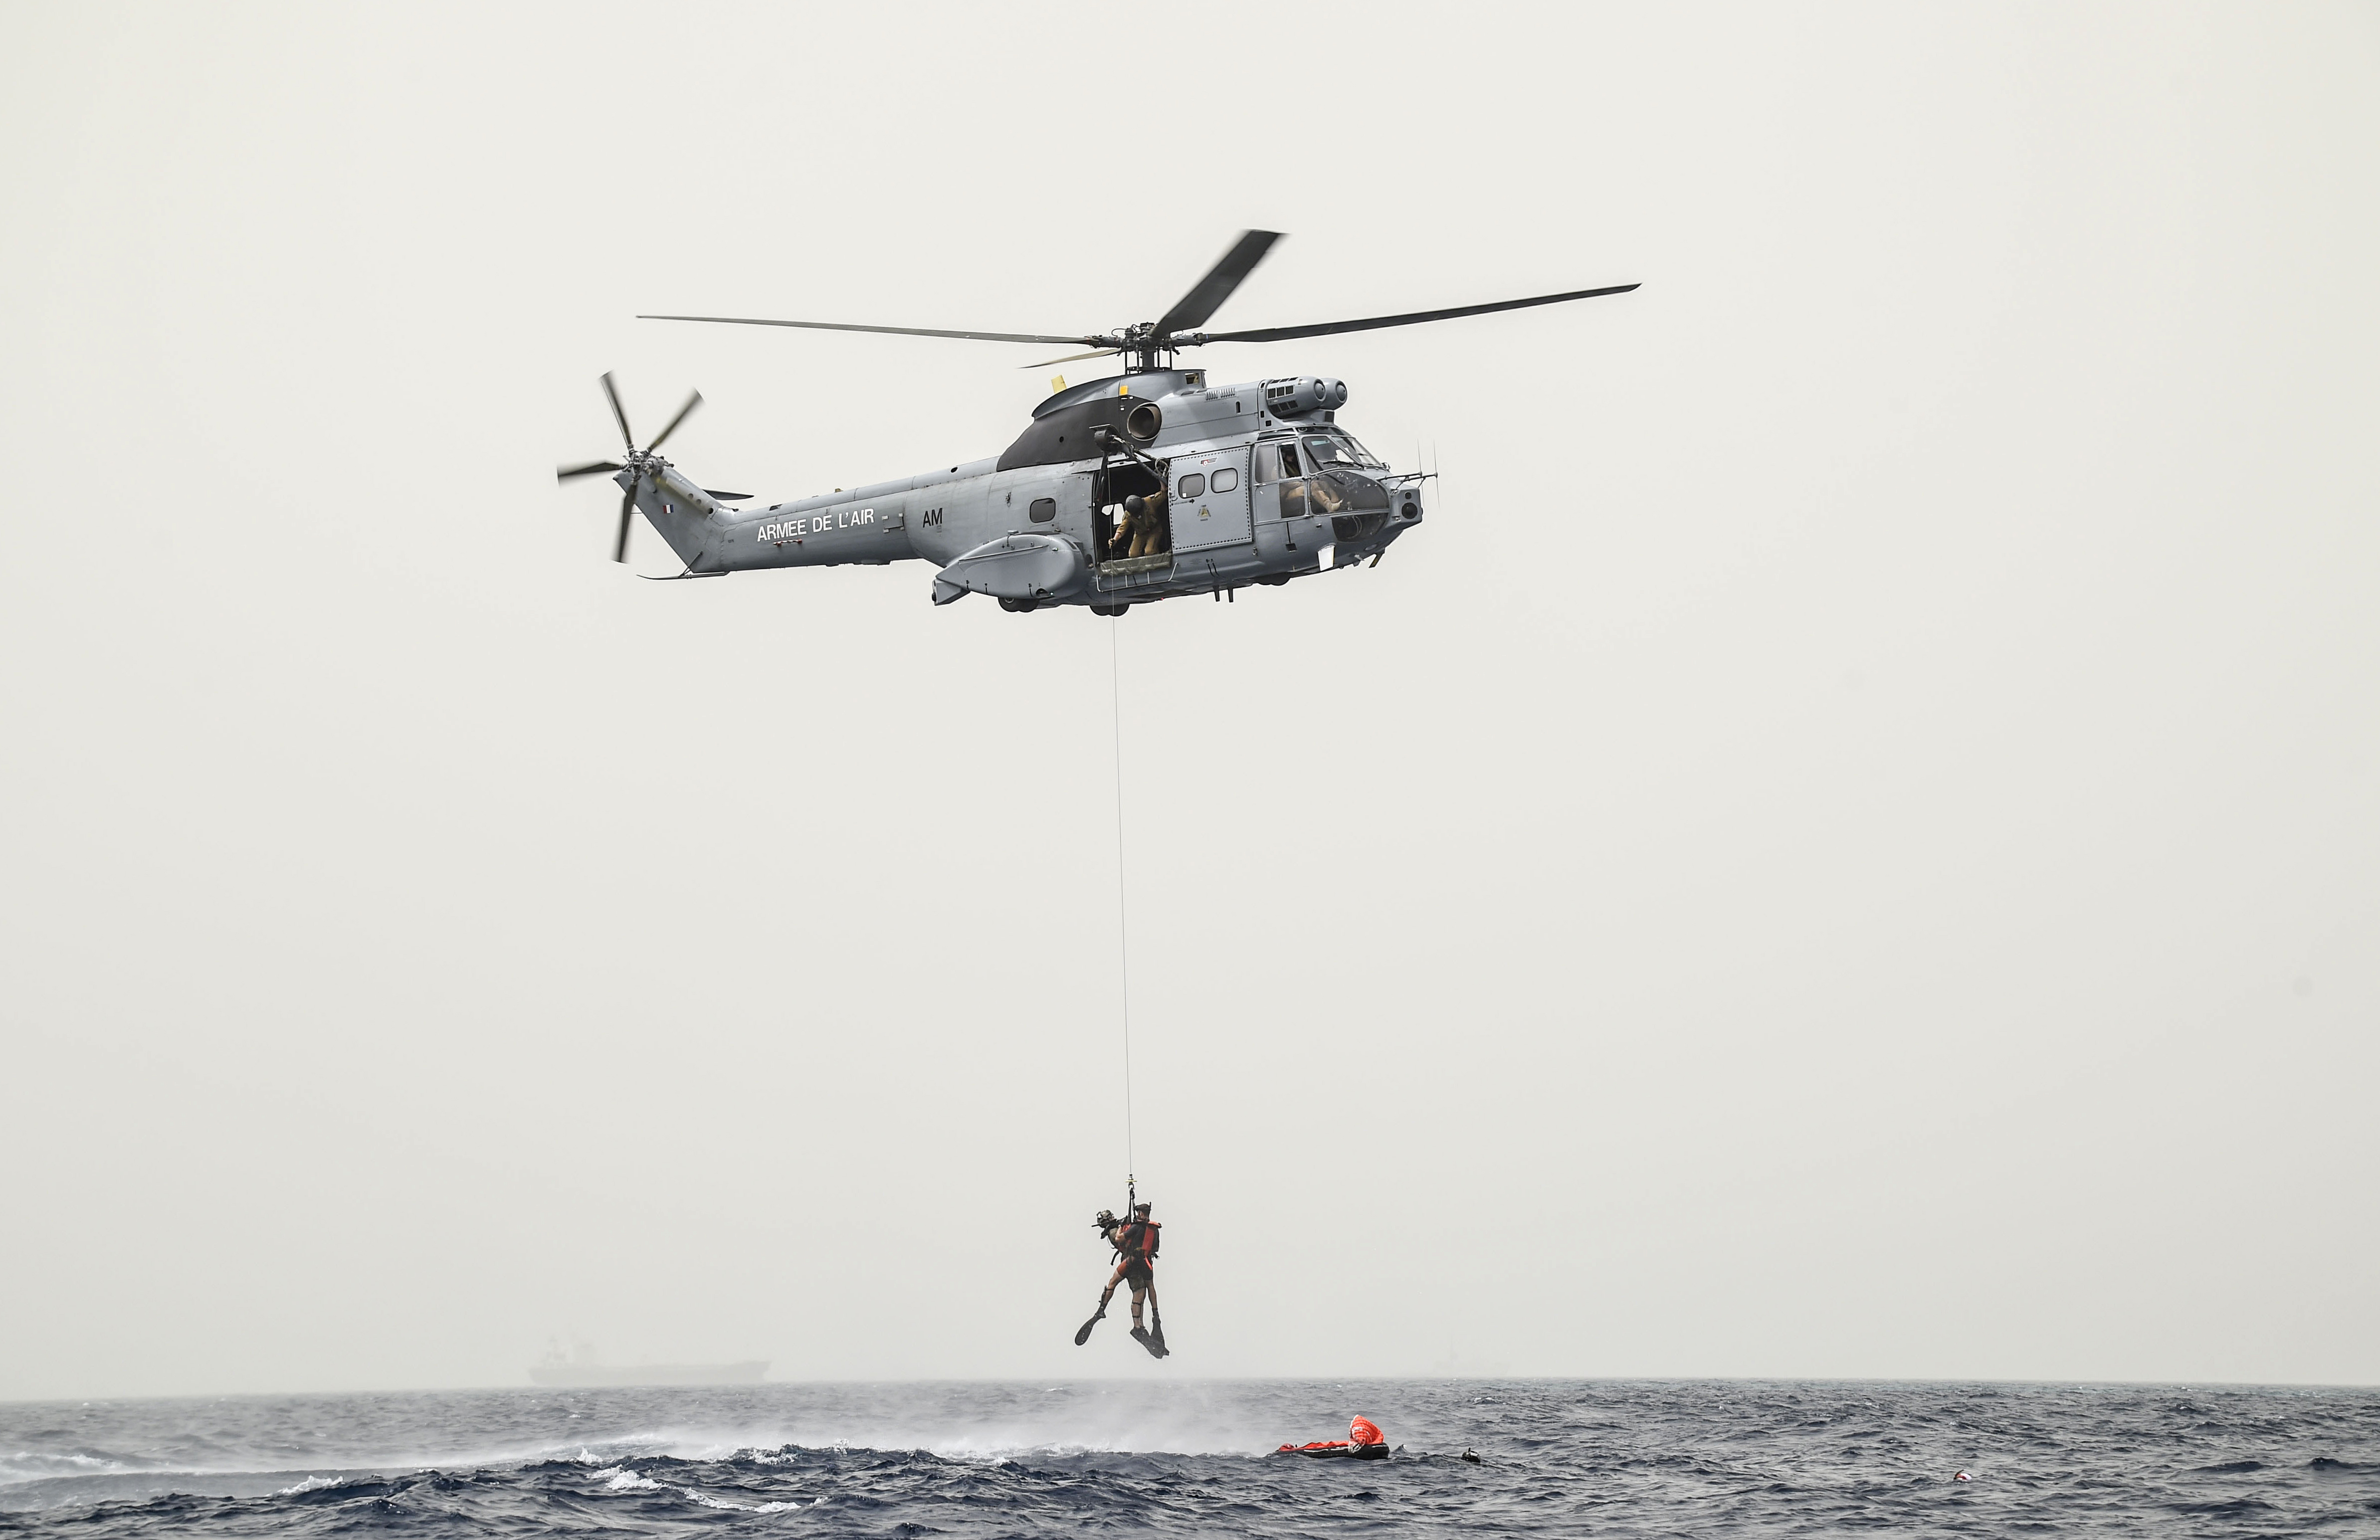 CJTF-HOA unit conducts first bilateral rotary wing water operations